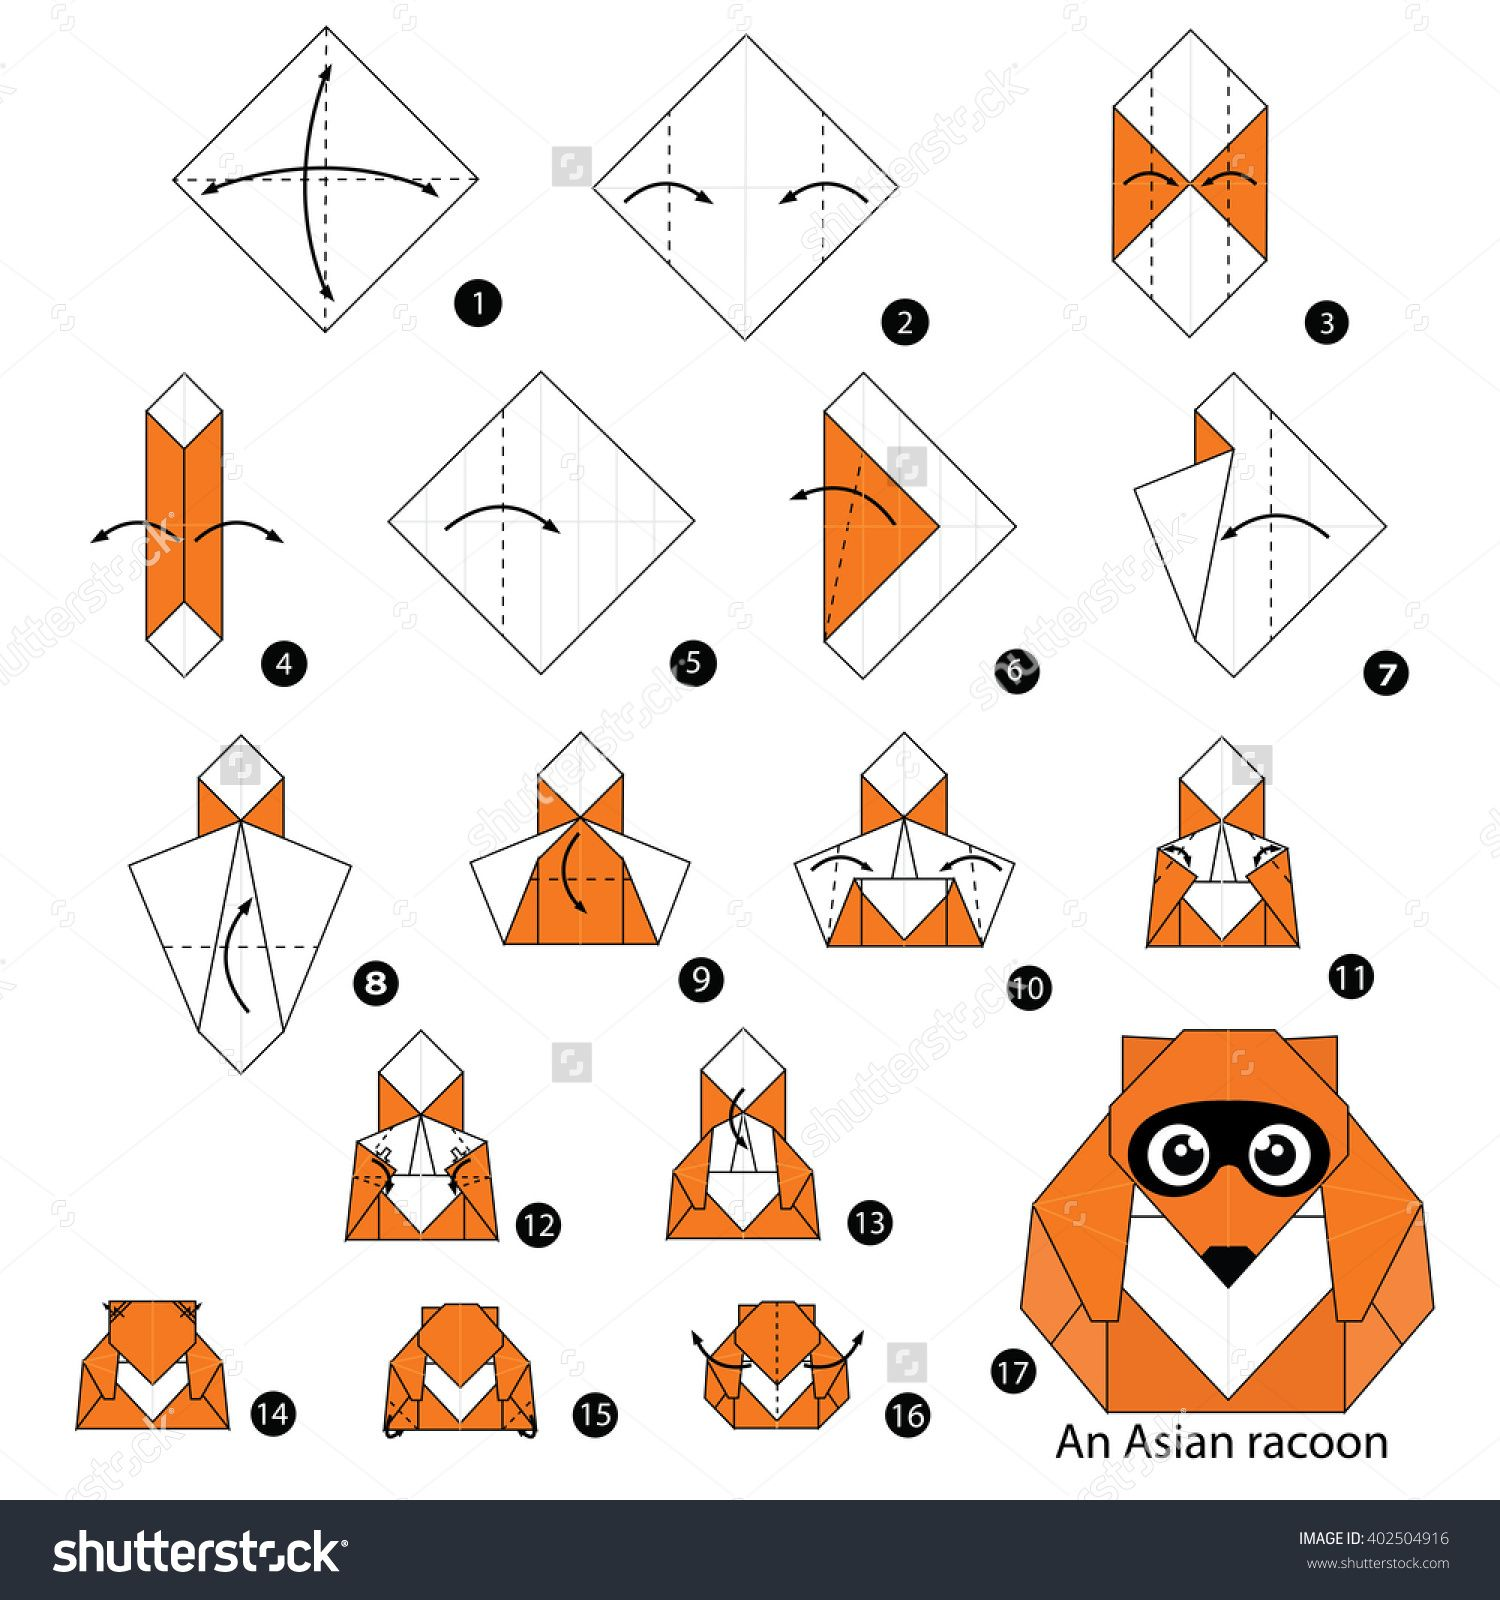 Step by step instructions how to make origami an asian raccoon step by step instructions how to make origami an asian raccoon stock vektorkp 402504916 jeuxipadfo Choice Image